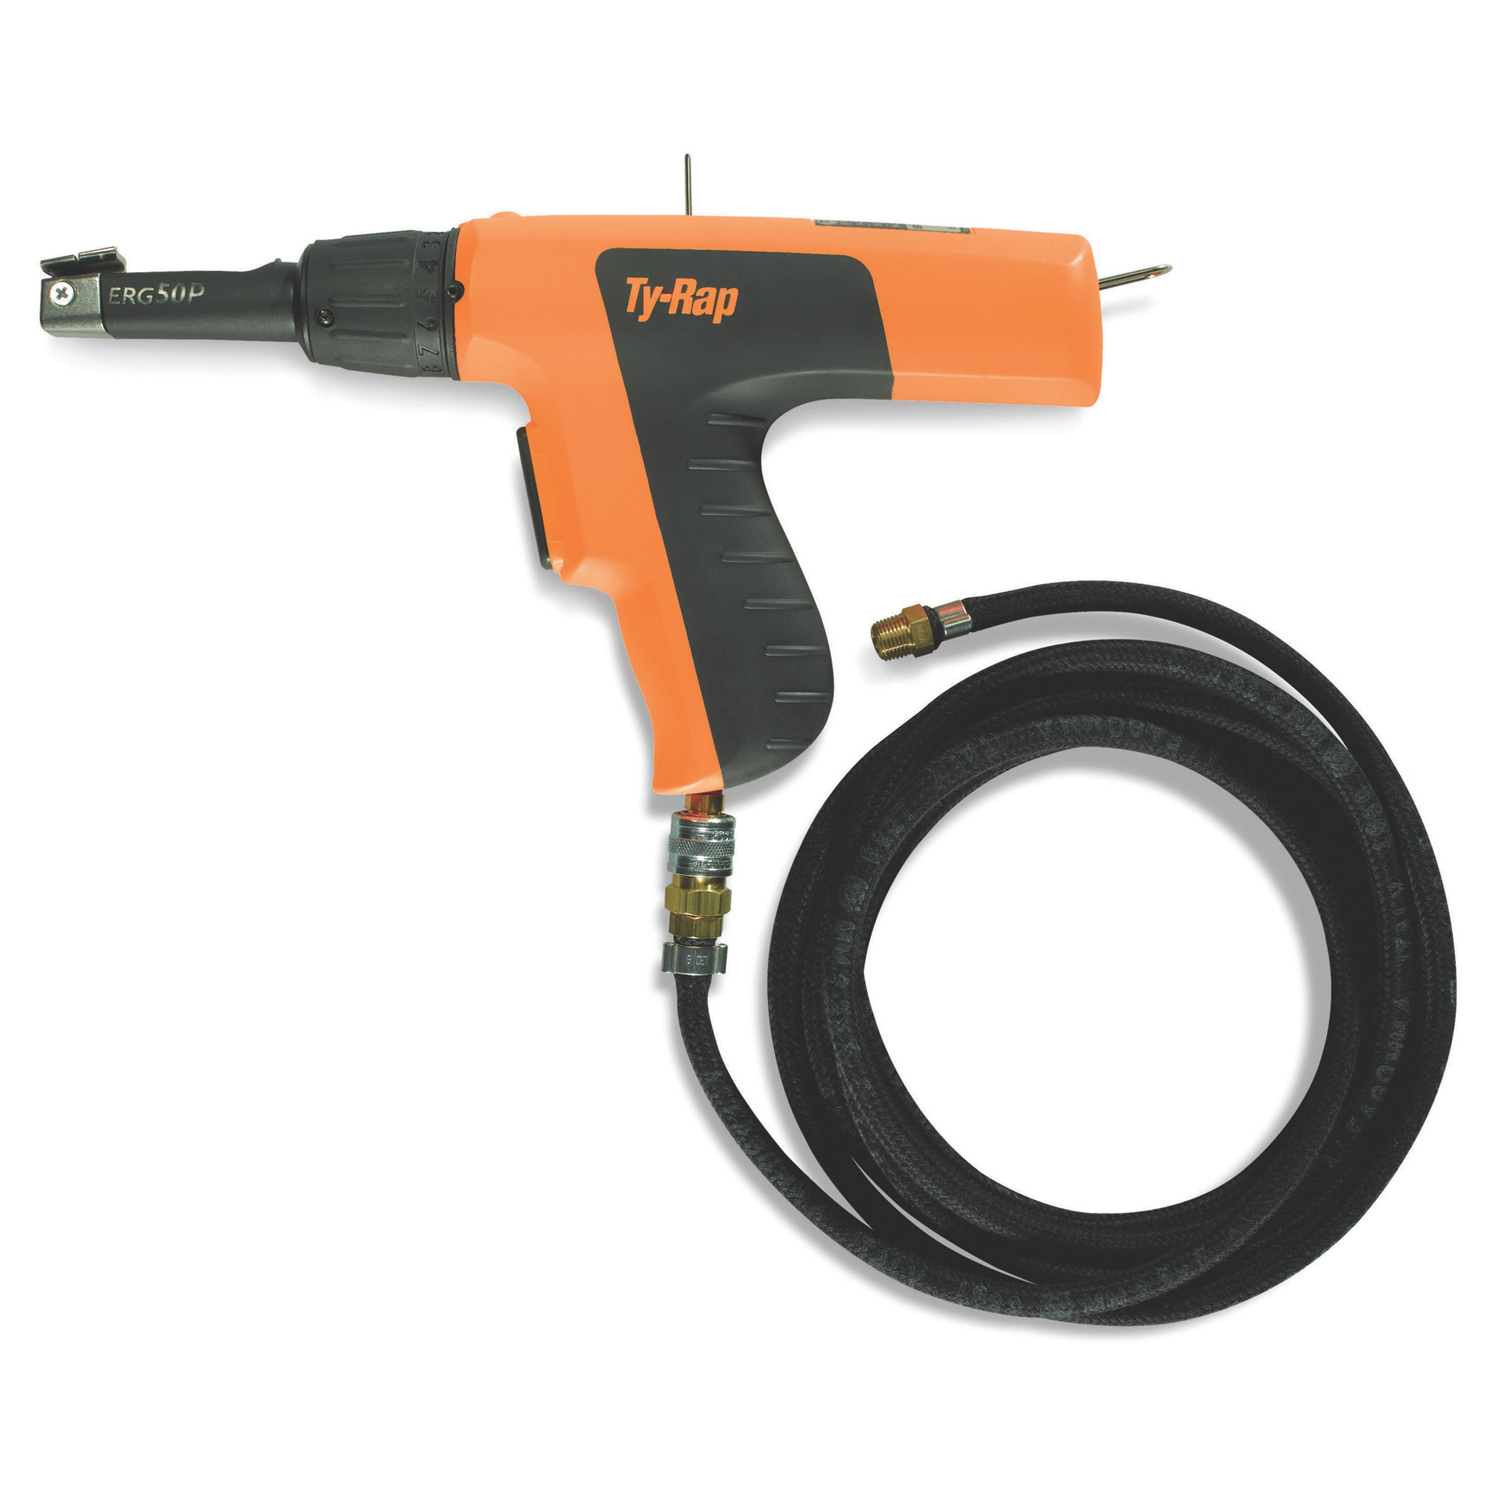 """T&B ERG50P Pneumatic Hand Installation Tool, for Nylon Cable Ties, 18-50 lbs, 0.94""""-.184"""" Tie Width. Includes 9ft Air Hose"""